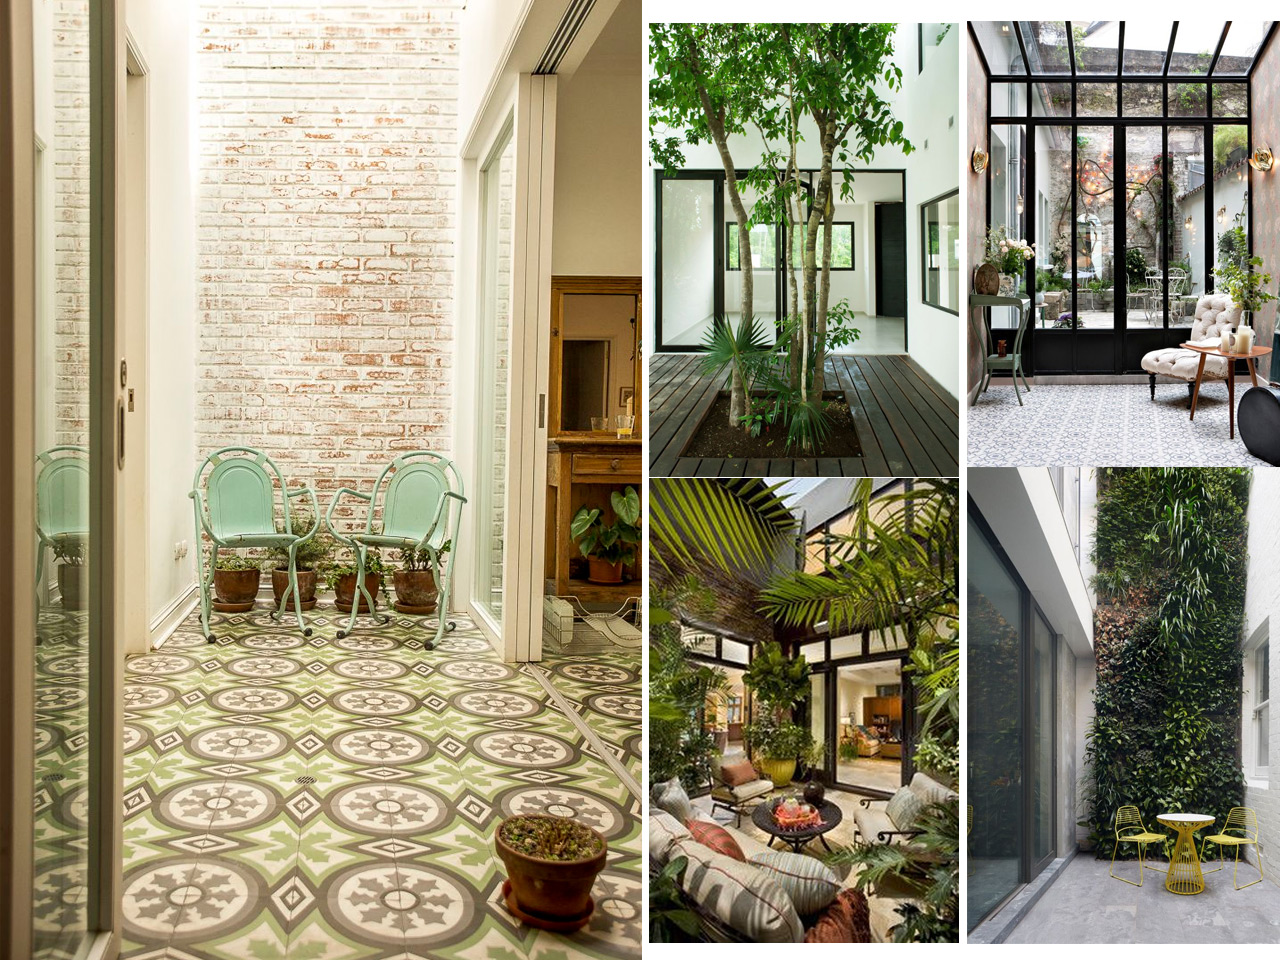 Tus 7 inspiraciones de decoraci n de terrazas interiores for Decoracion jardin interior